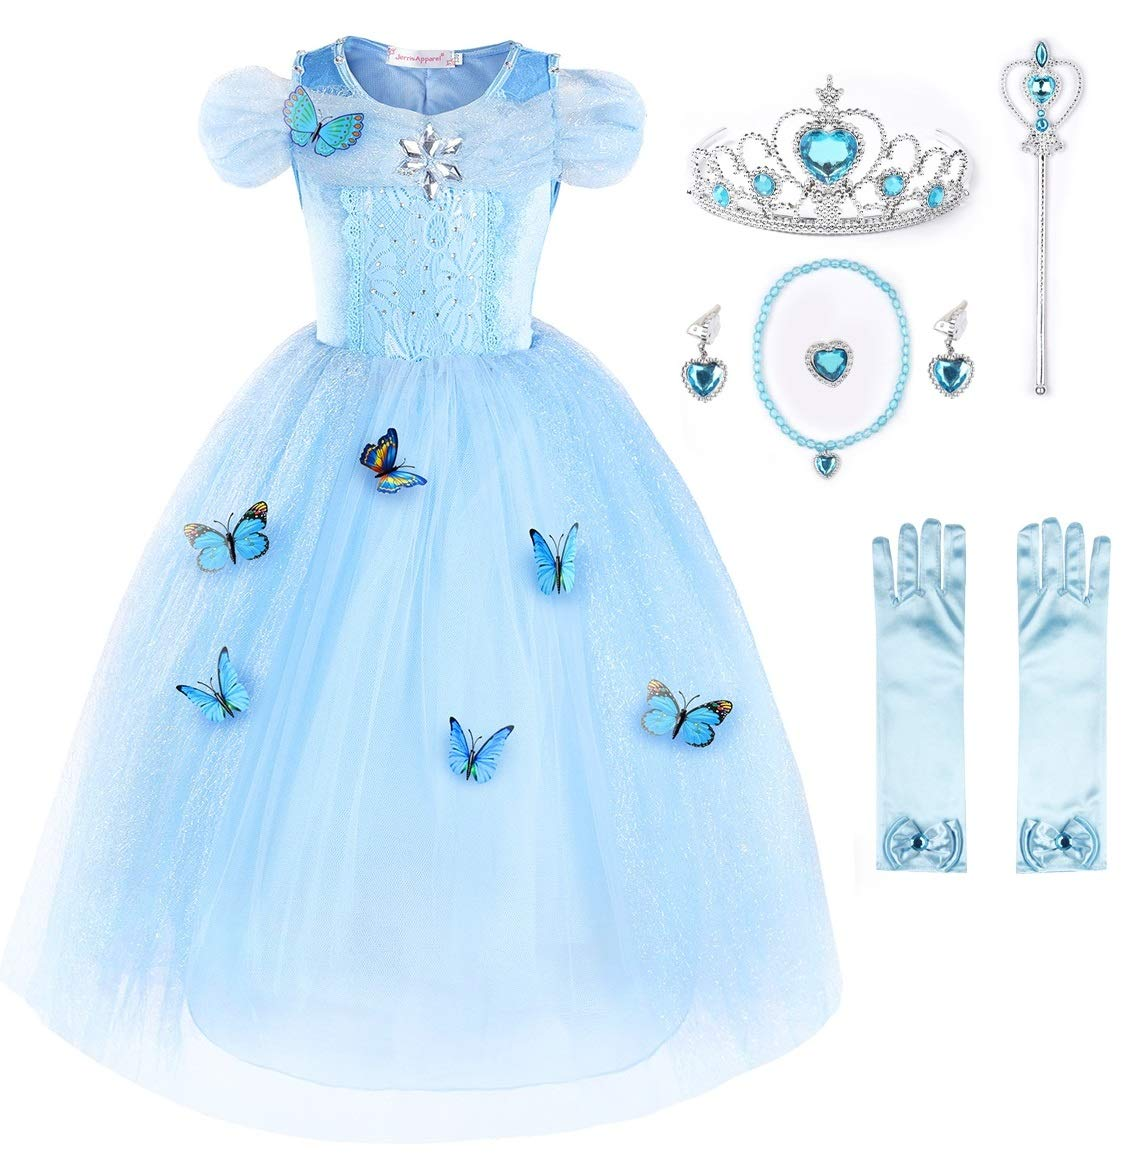 JerrisApparel New Cinderella Dress Princess Costume Butterfly Girl (4 Years, Sky Blue with Accessories)